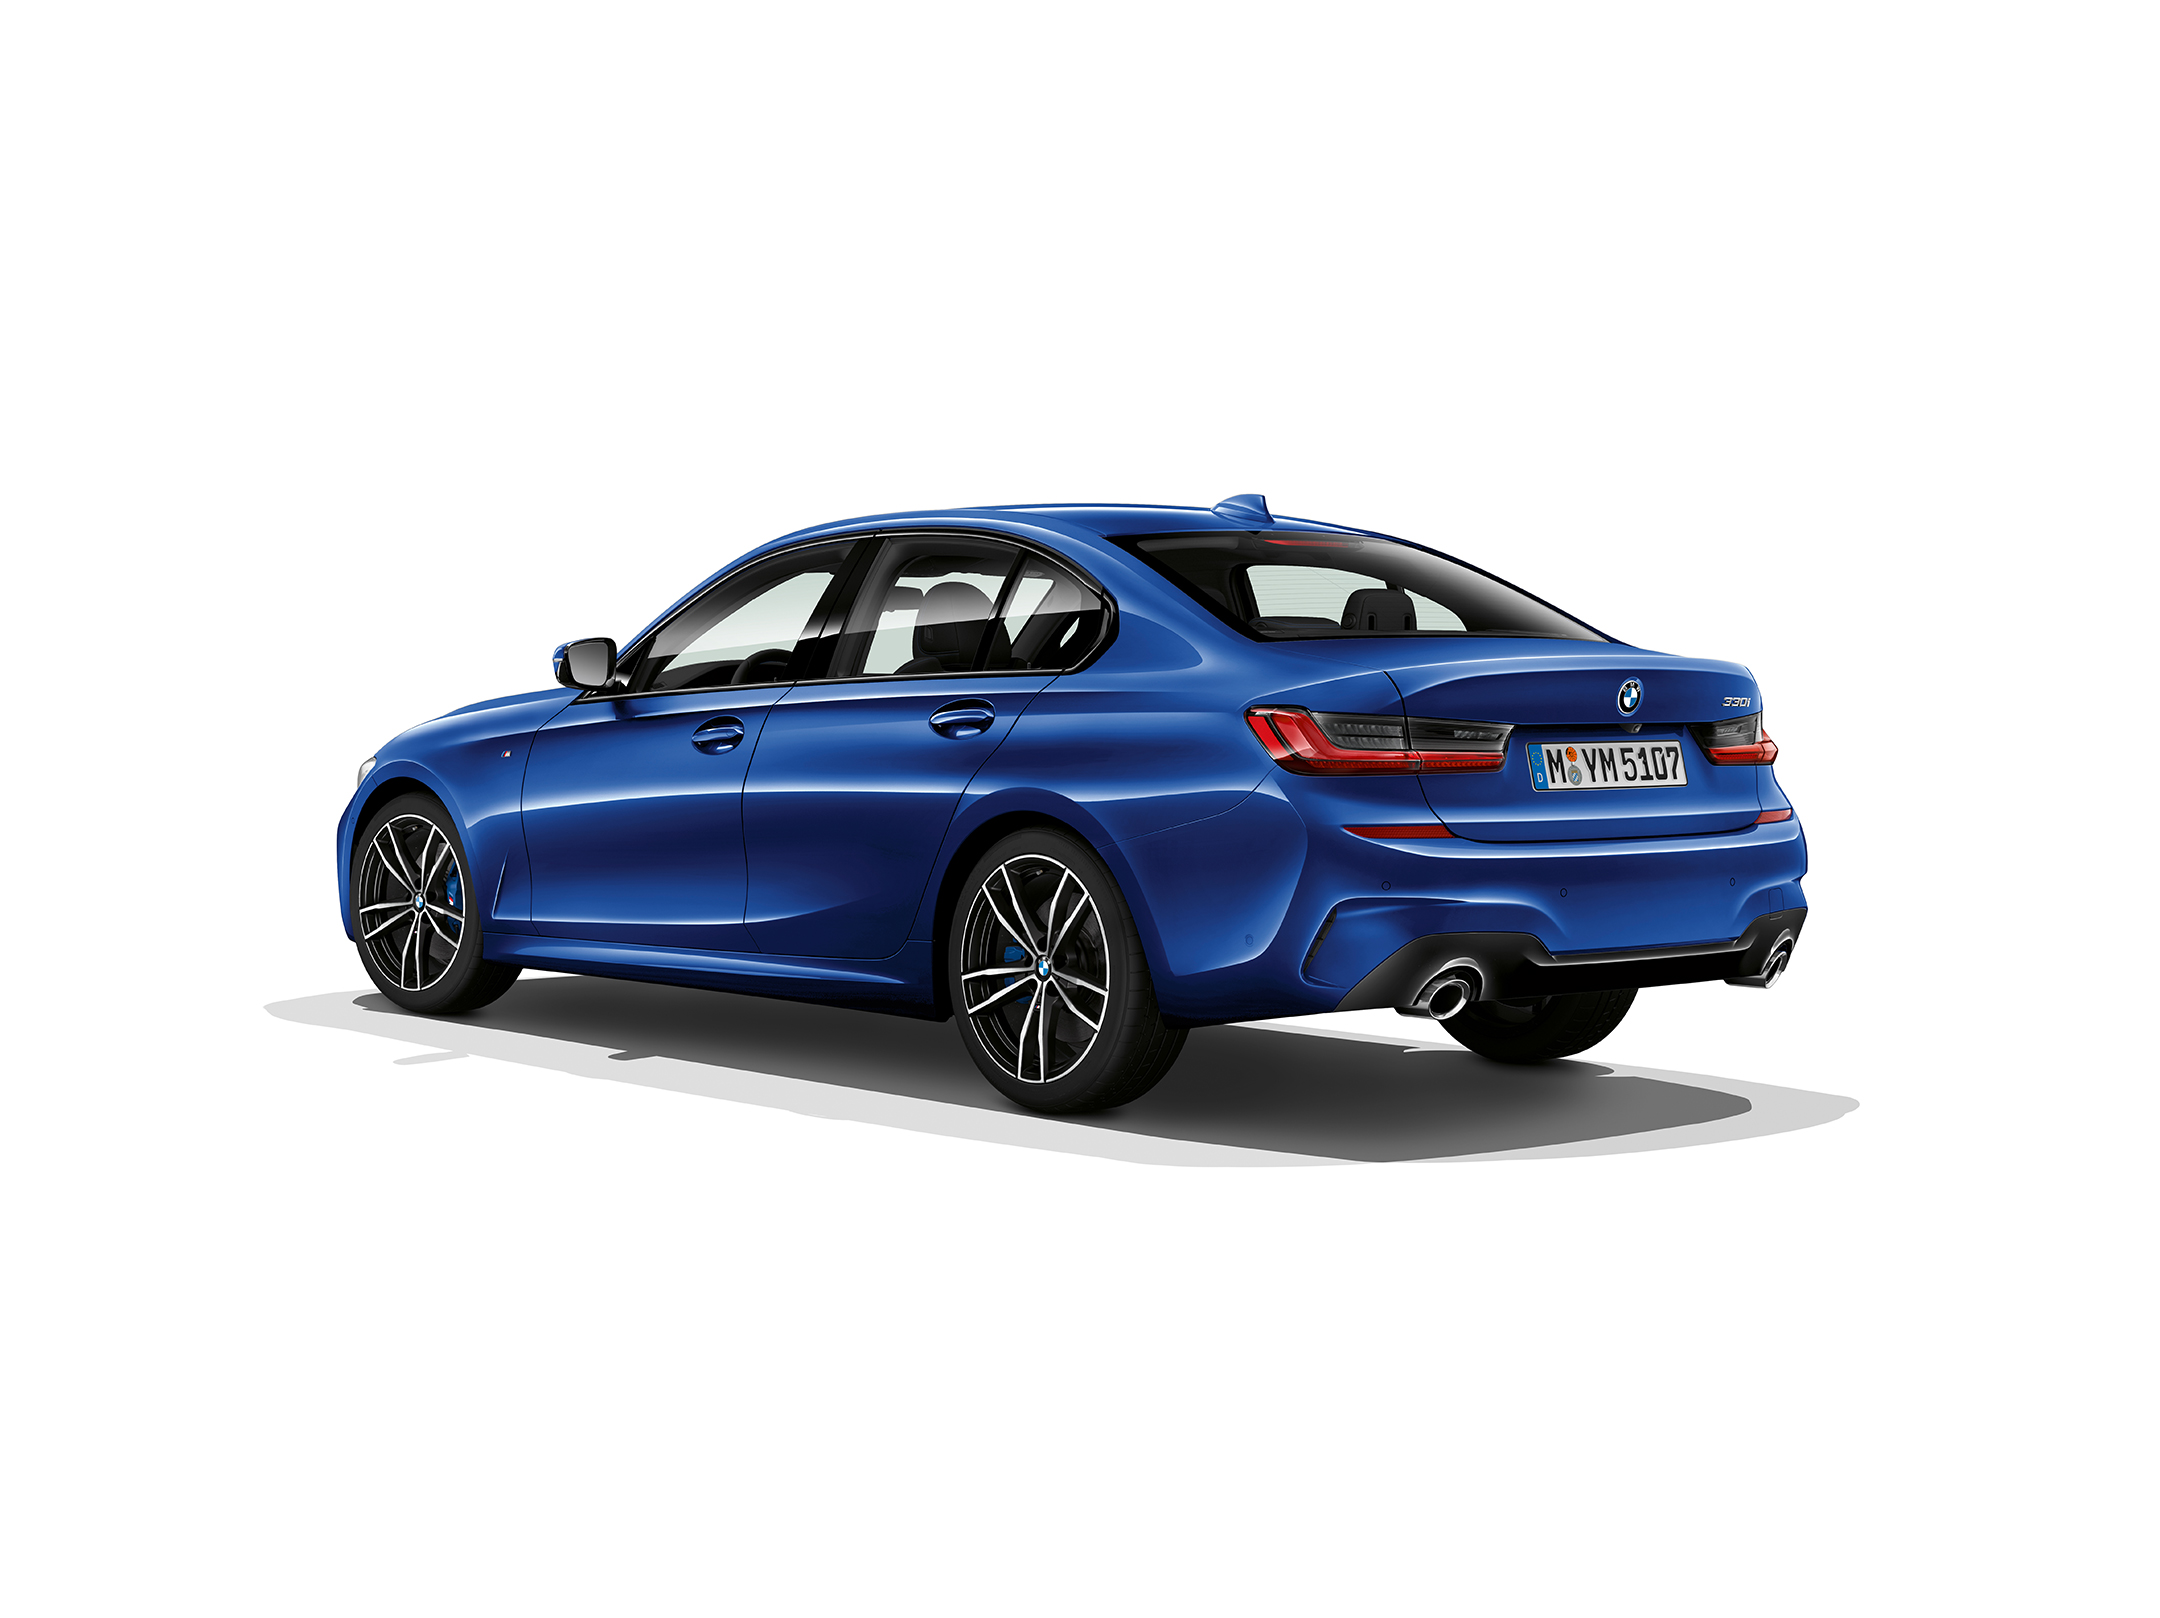 BMW Serie 3 Berline - 2018 - rear side-face / profil arrière